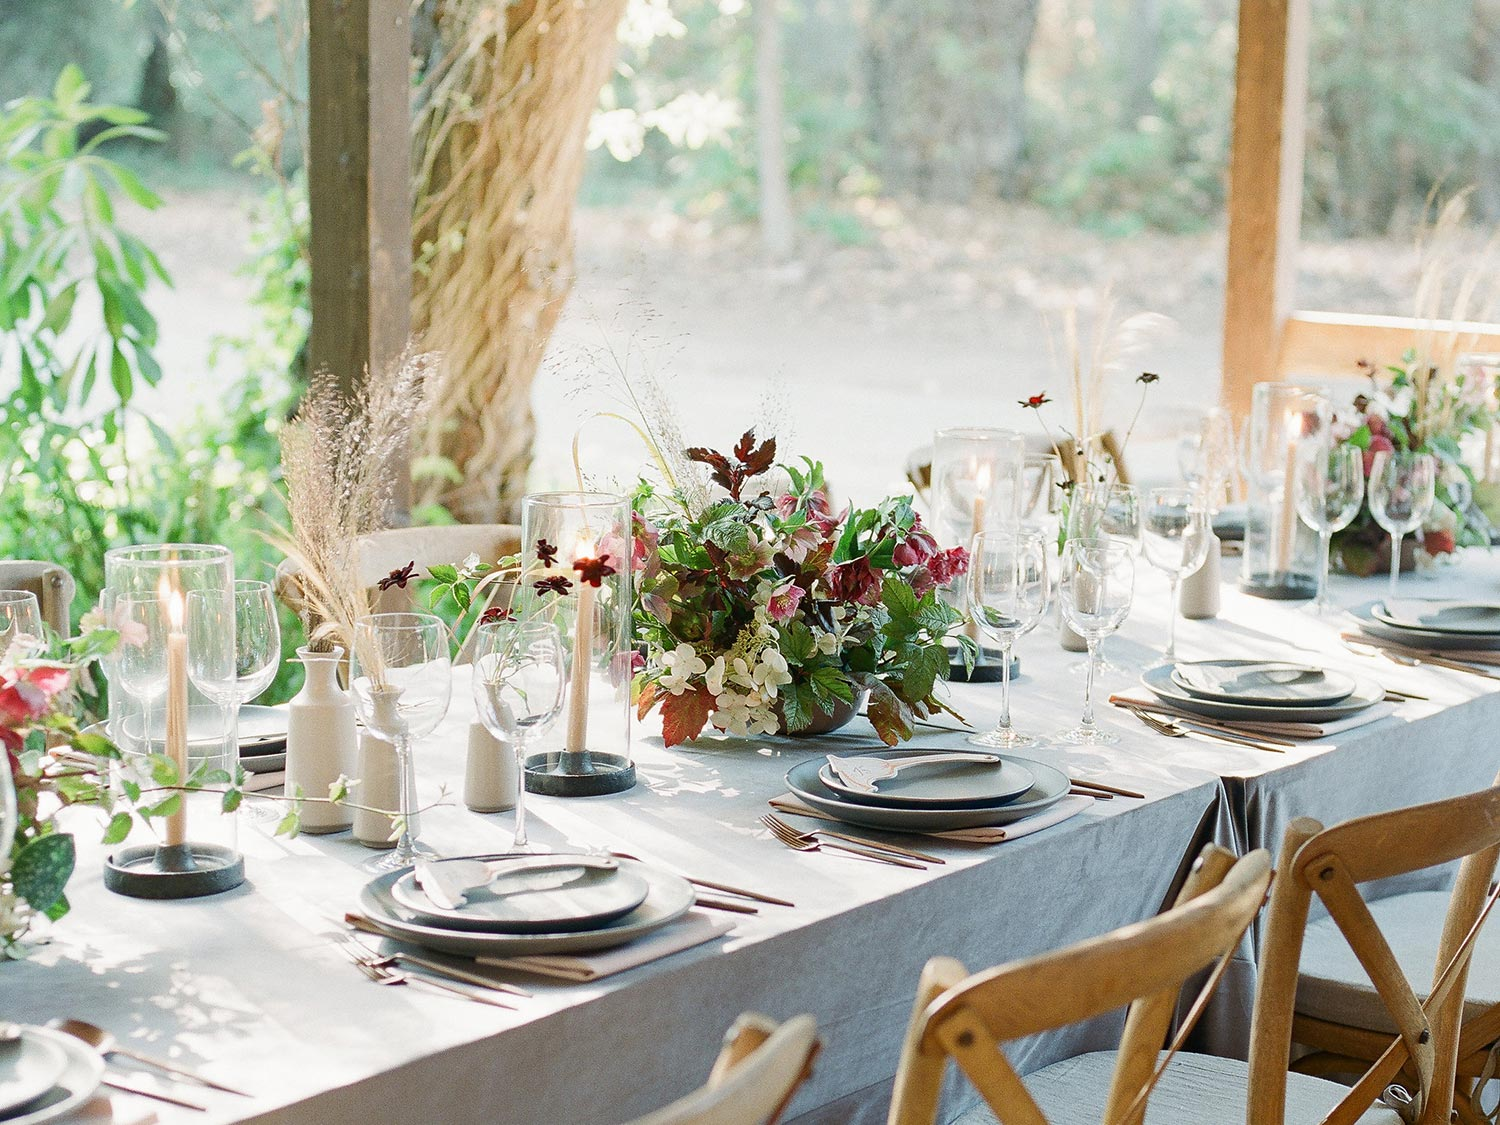 LATE SUMMER IN CALIFORNIA MEANS BEAUTIFUL SANDY COLORED GRASSES AND WILD PEE GEE HYDRANGEA IN ABUNDANCE. I LOVE THE WAY THIS TABLESCAPE FEELS AIRY AND FEMININE WHILE THE TONES KEEPS THE COMPOSITION GROUNDED. -